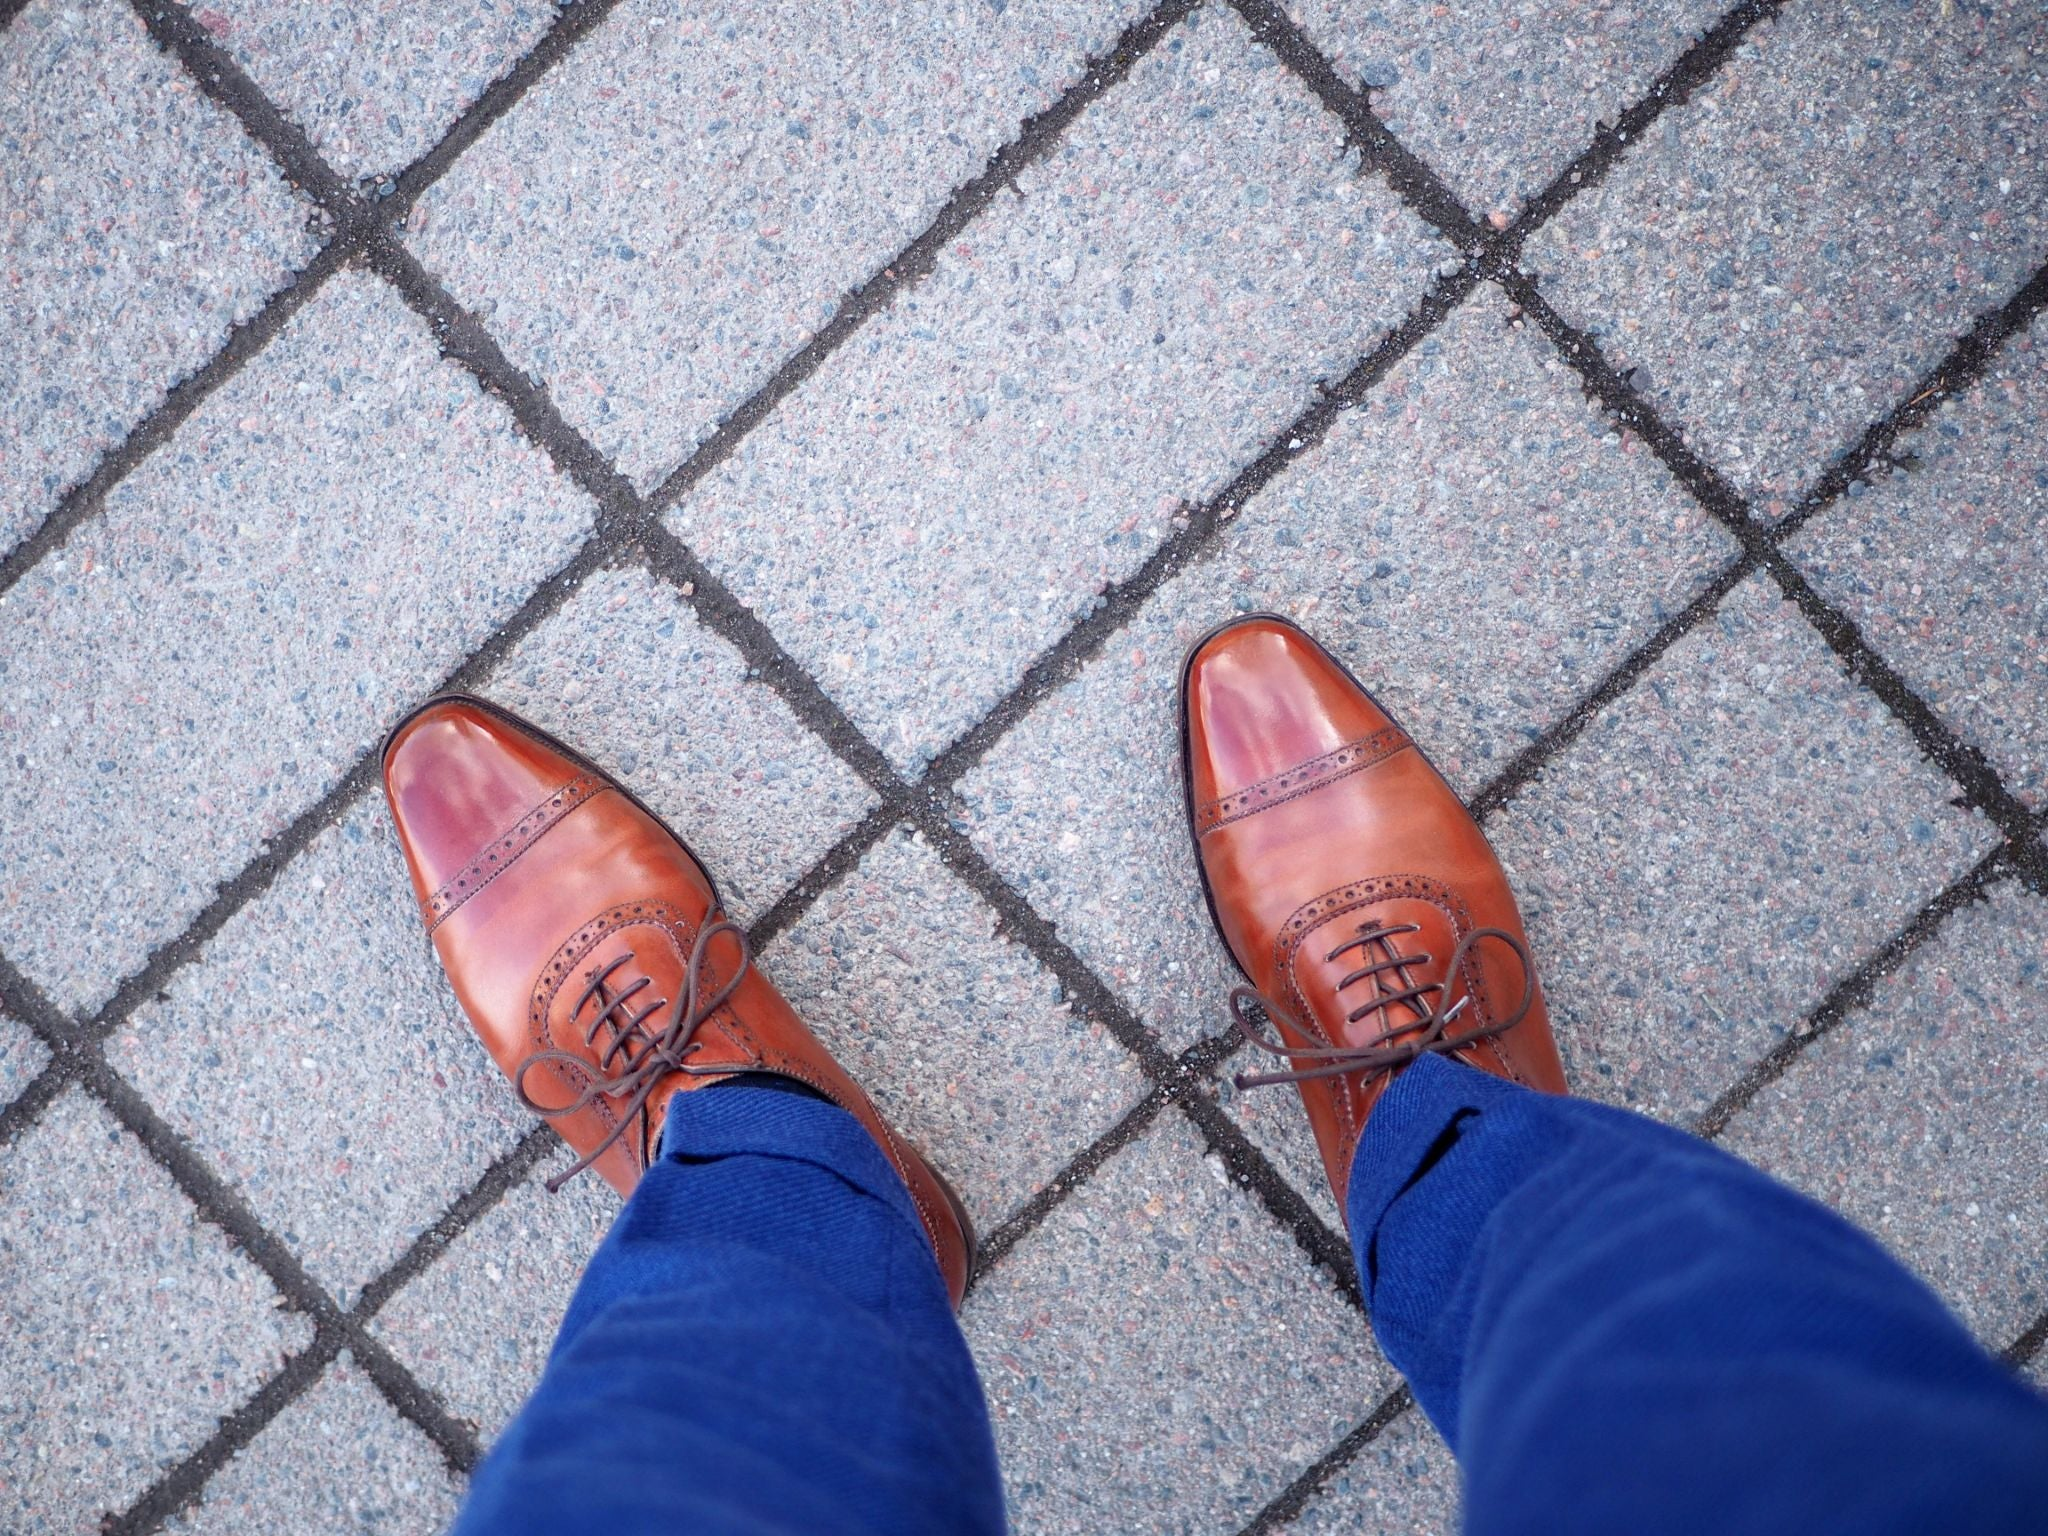 Mid-brown shoes with business suit - My Alfred Sargent adelaide oxfords after five years of wear.